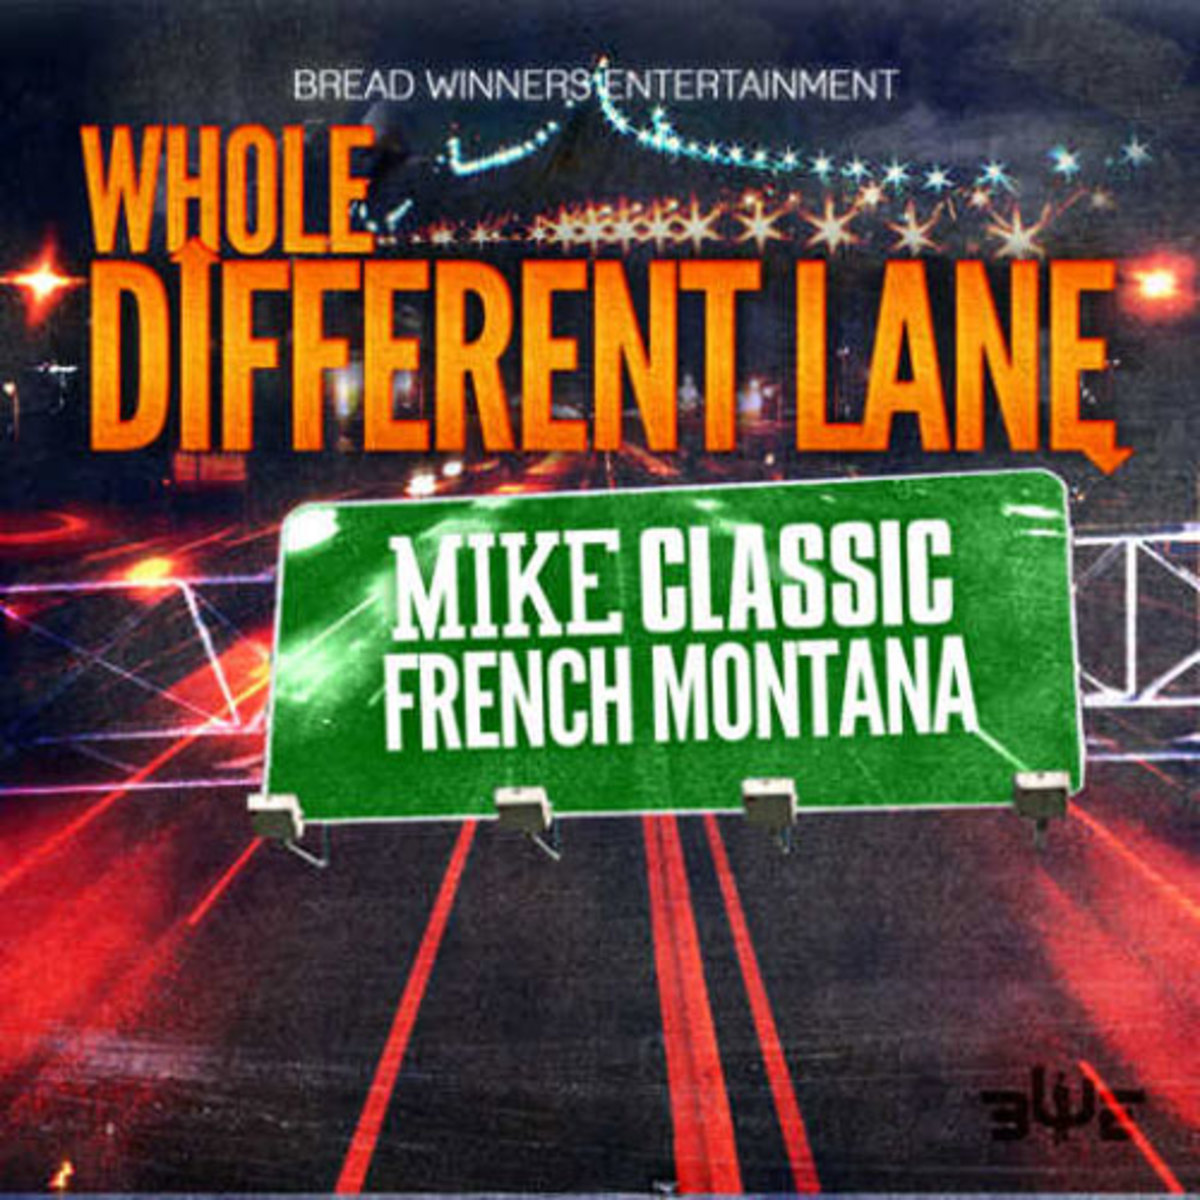 mikeclassic-wholedifferent.jpg